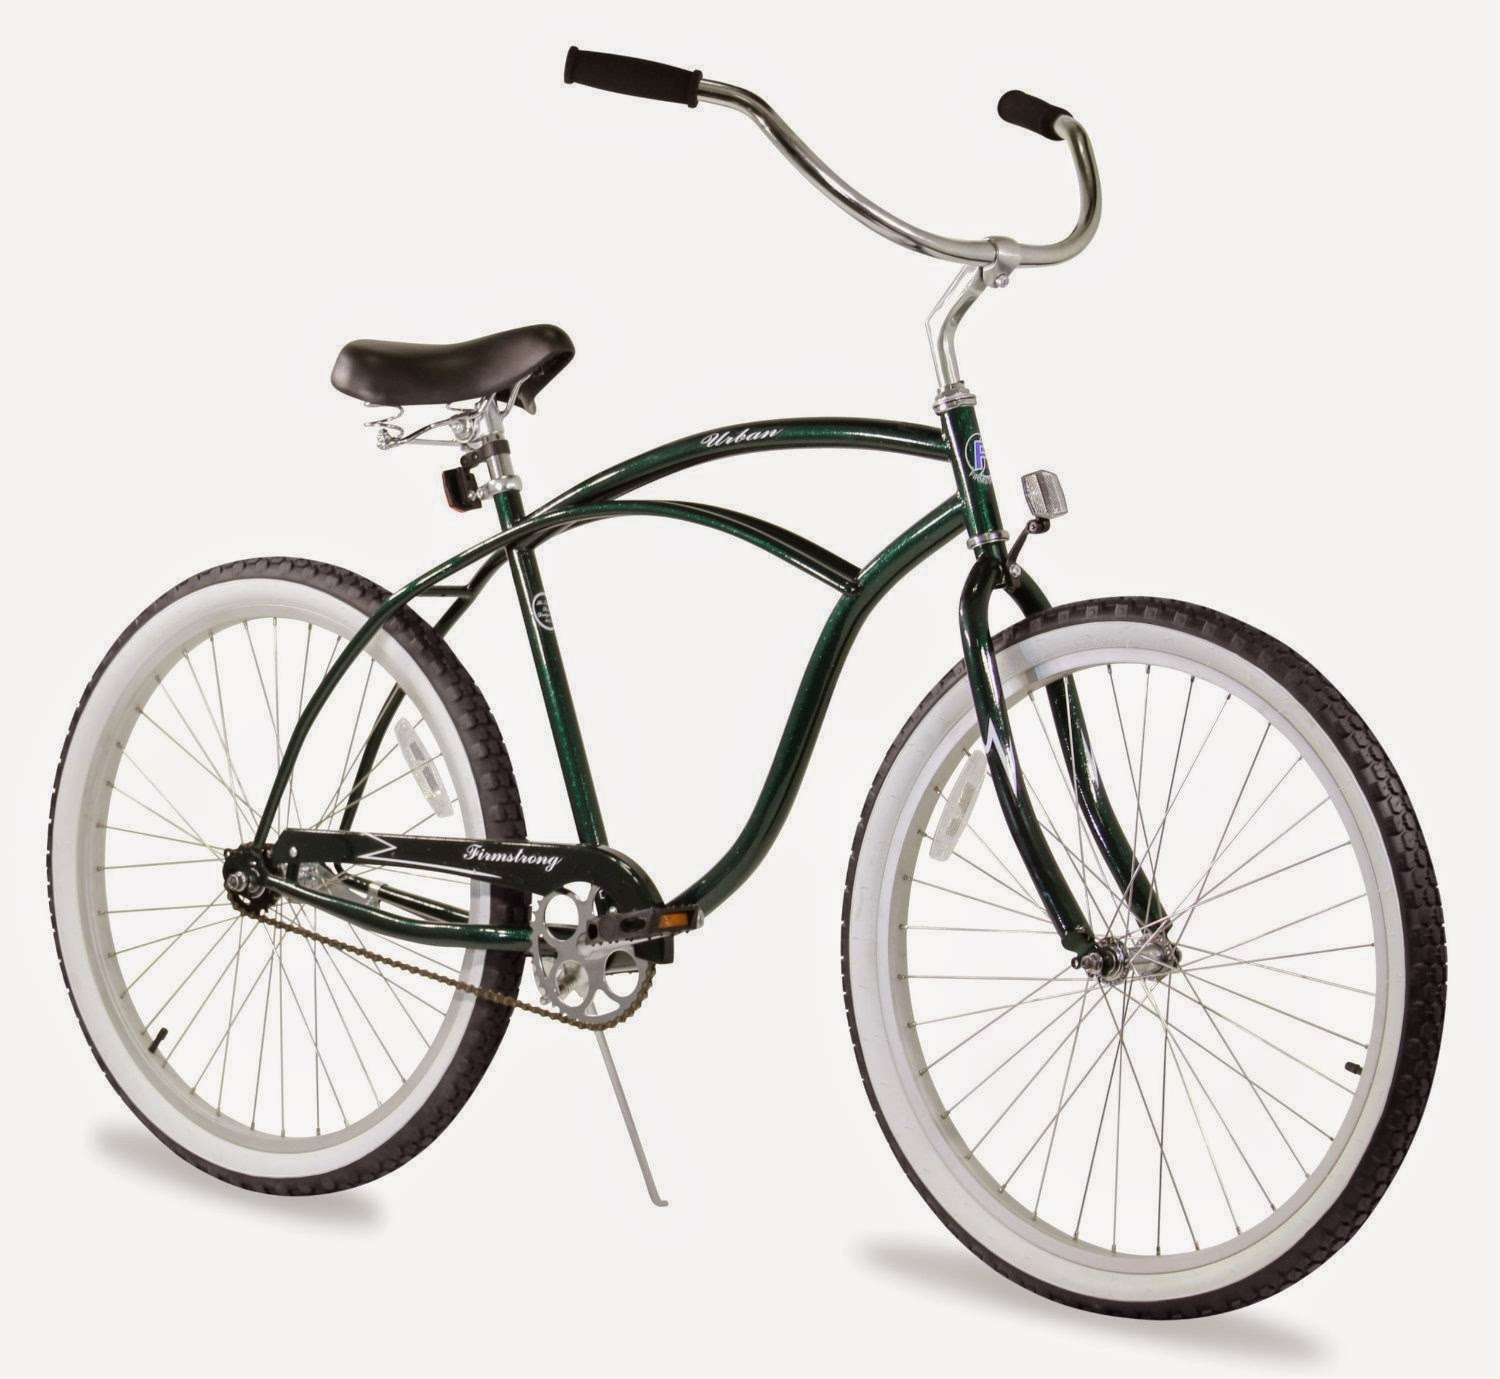 "Firmstrong Urban Man Single Speed - Men's 26"" Beach Cruiser Bike, picture, image, review features & specifications, compare with 3-speed and 7-speed versions"